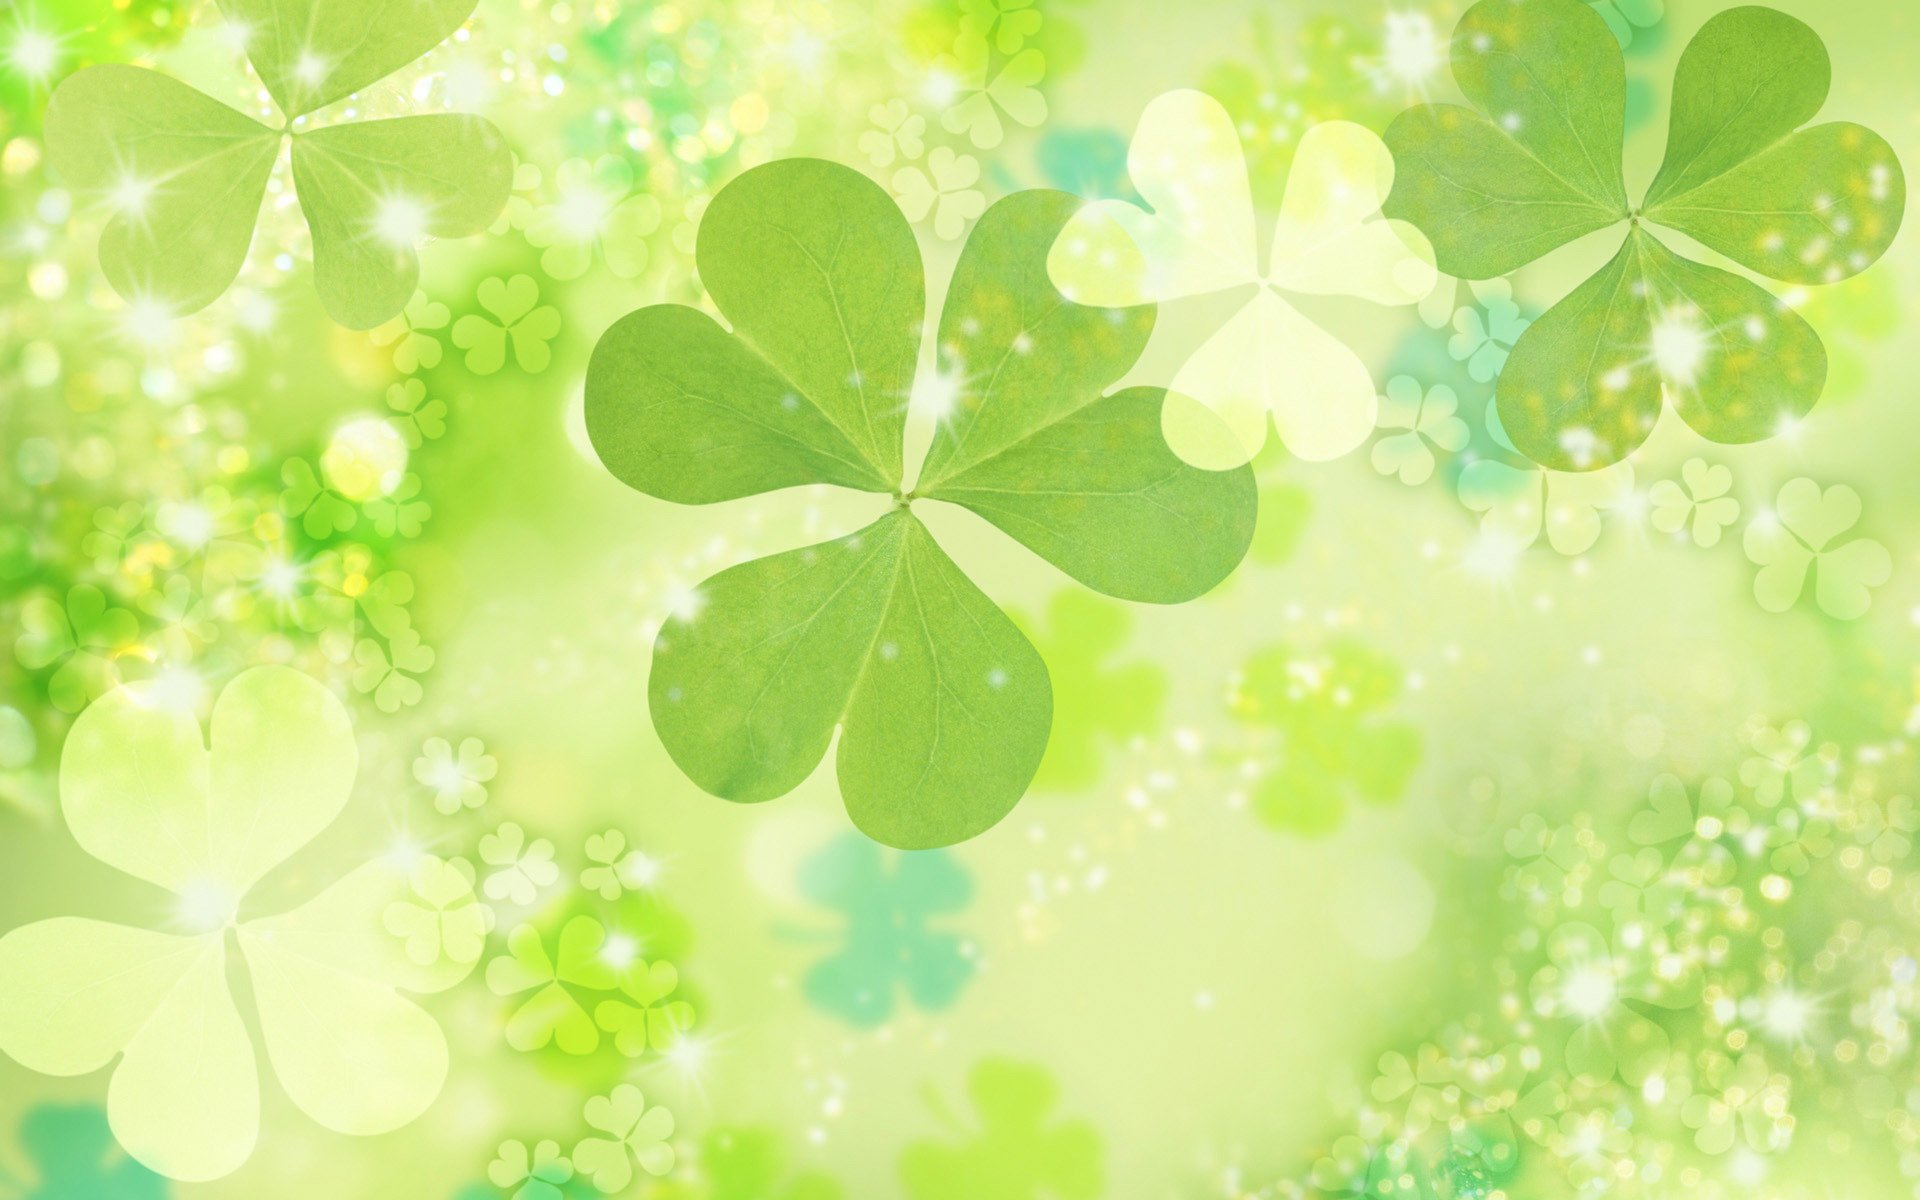 Clovers wallpaper 711 1920x1200